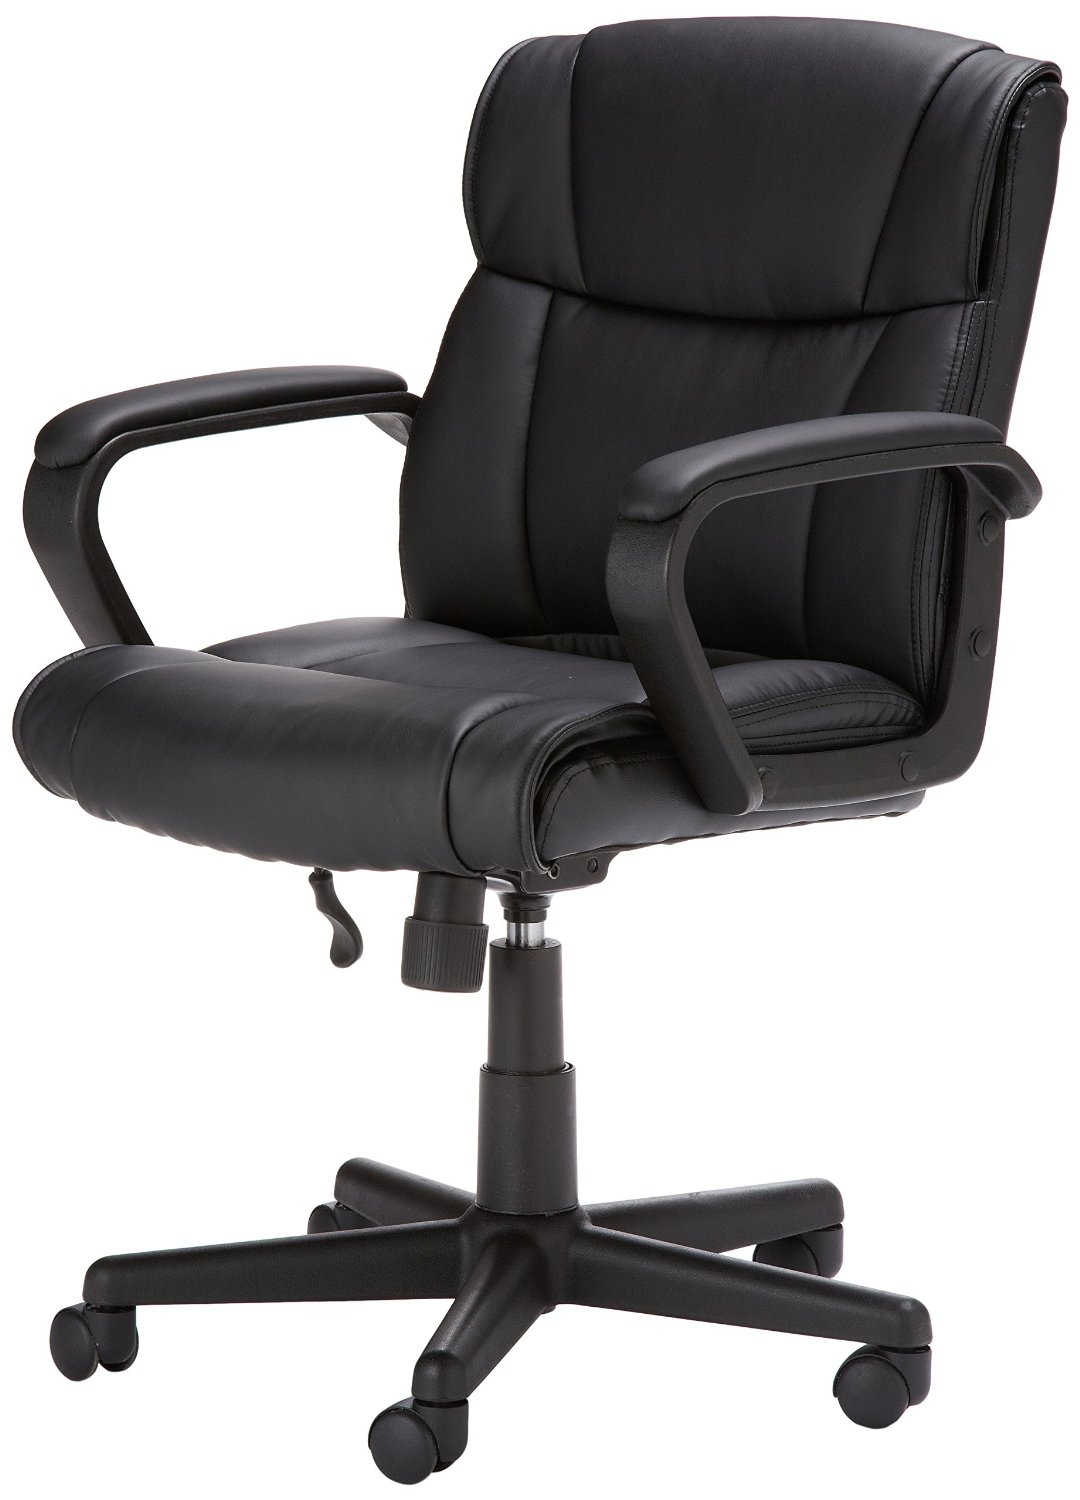 Chaise gamer pas cher l 39 amazon basics mid back office chair for Chaise klim